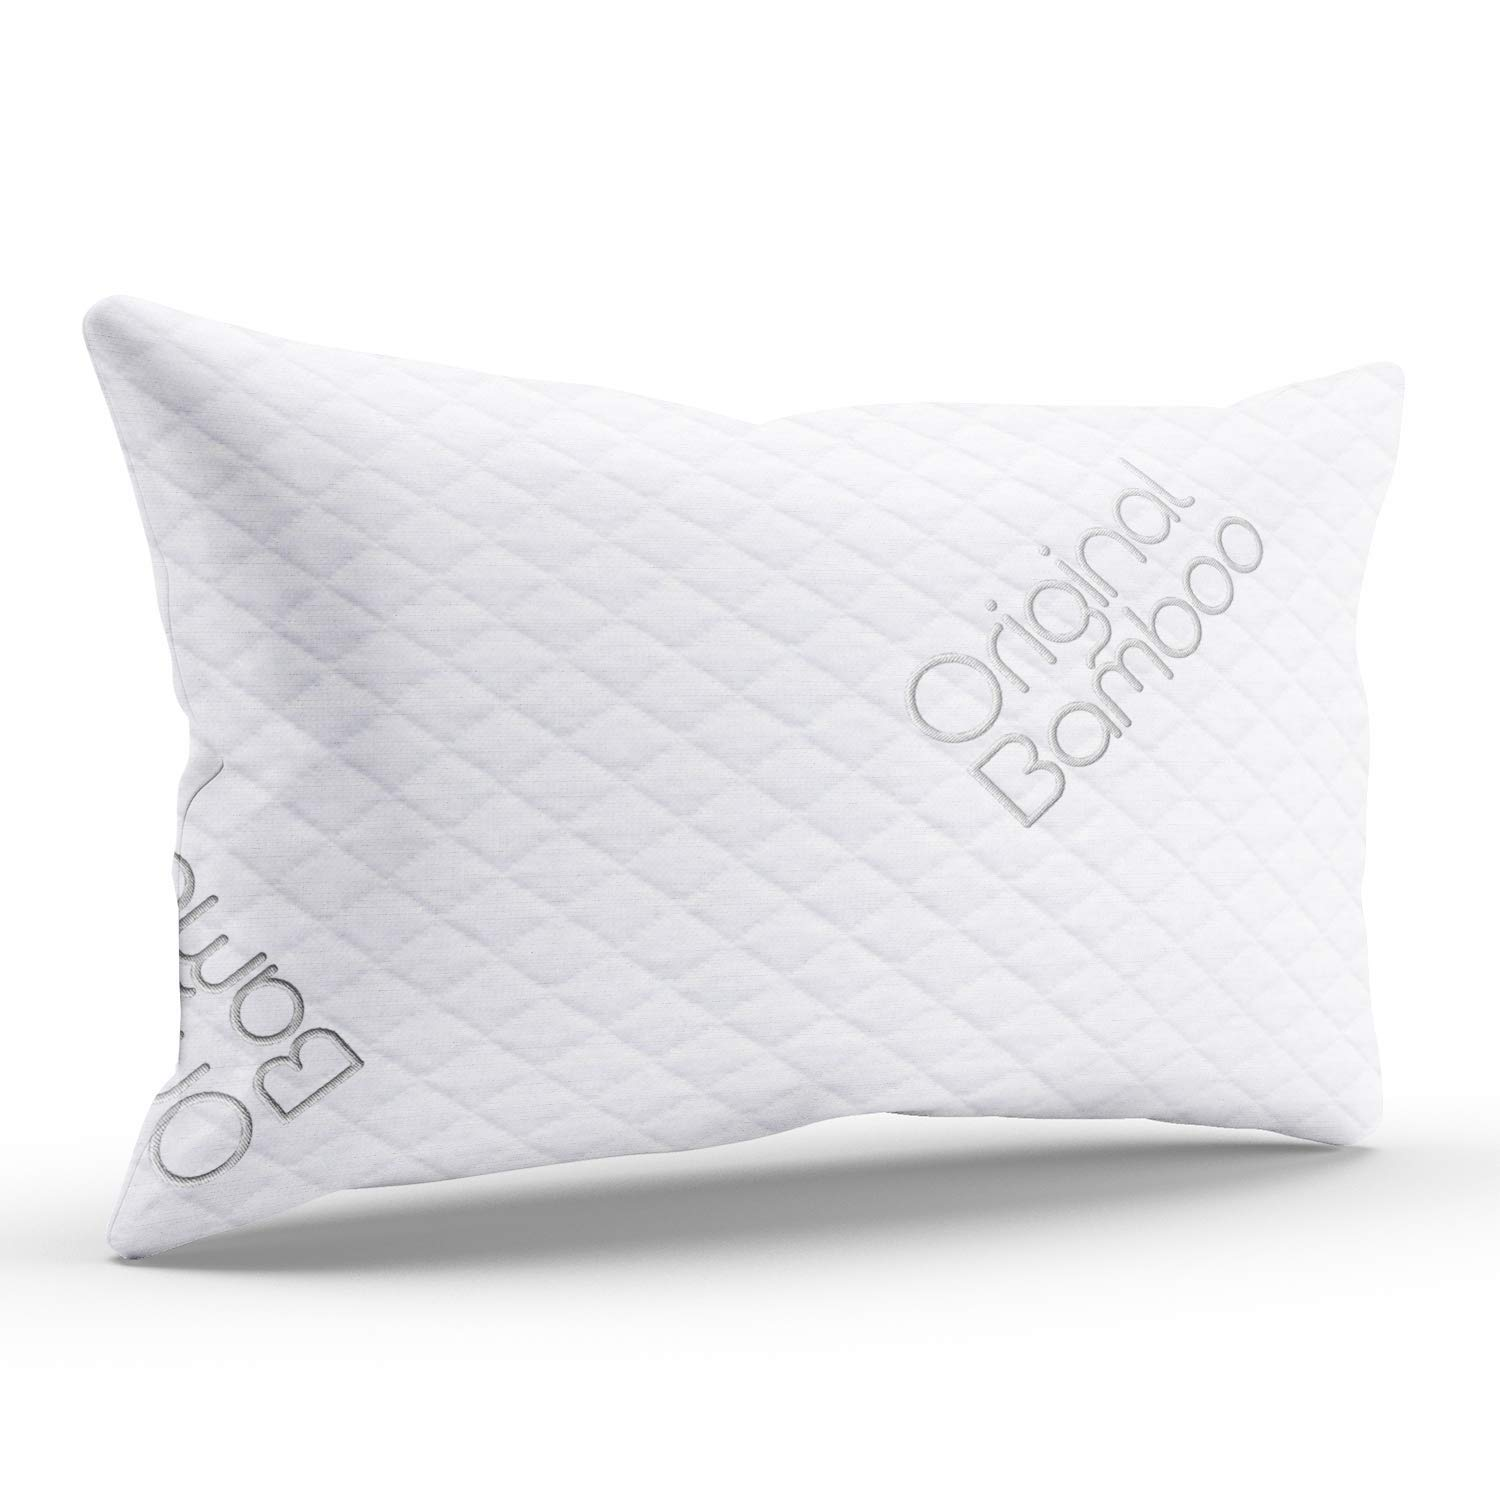 Best Pillows Australia Triple Cloud Shredded Memory Foam Pillow